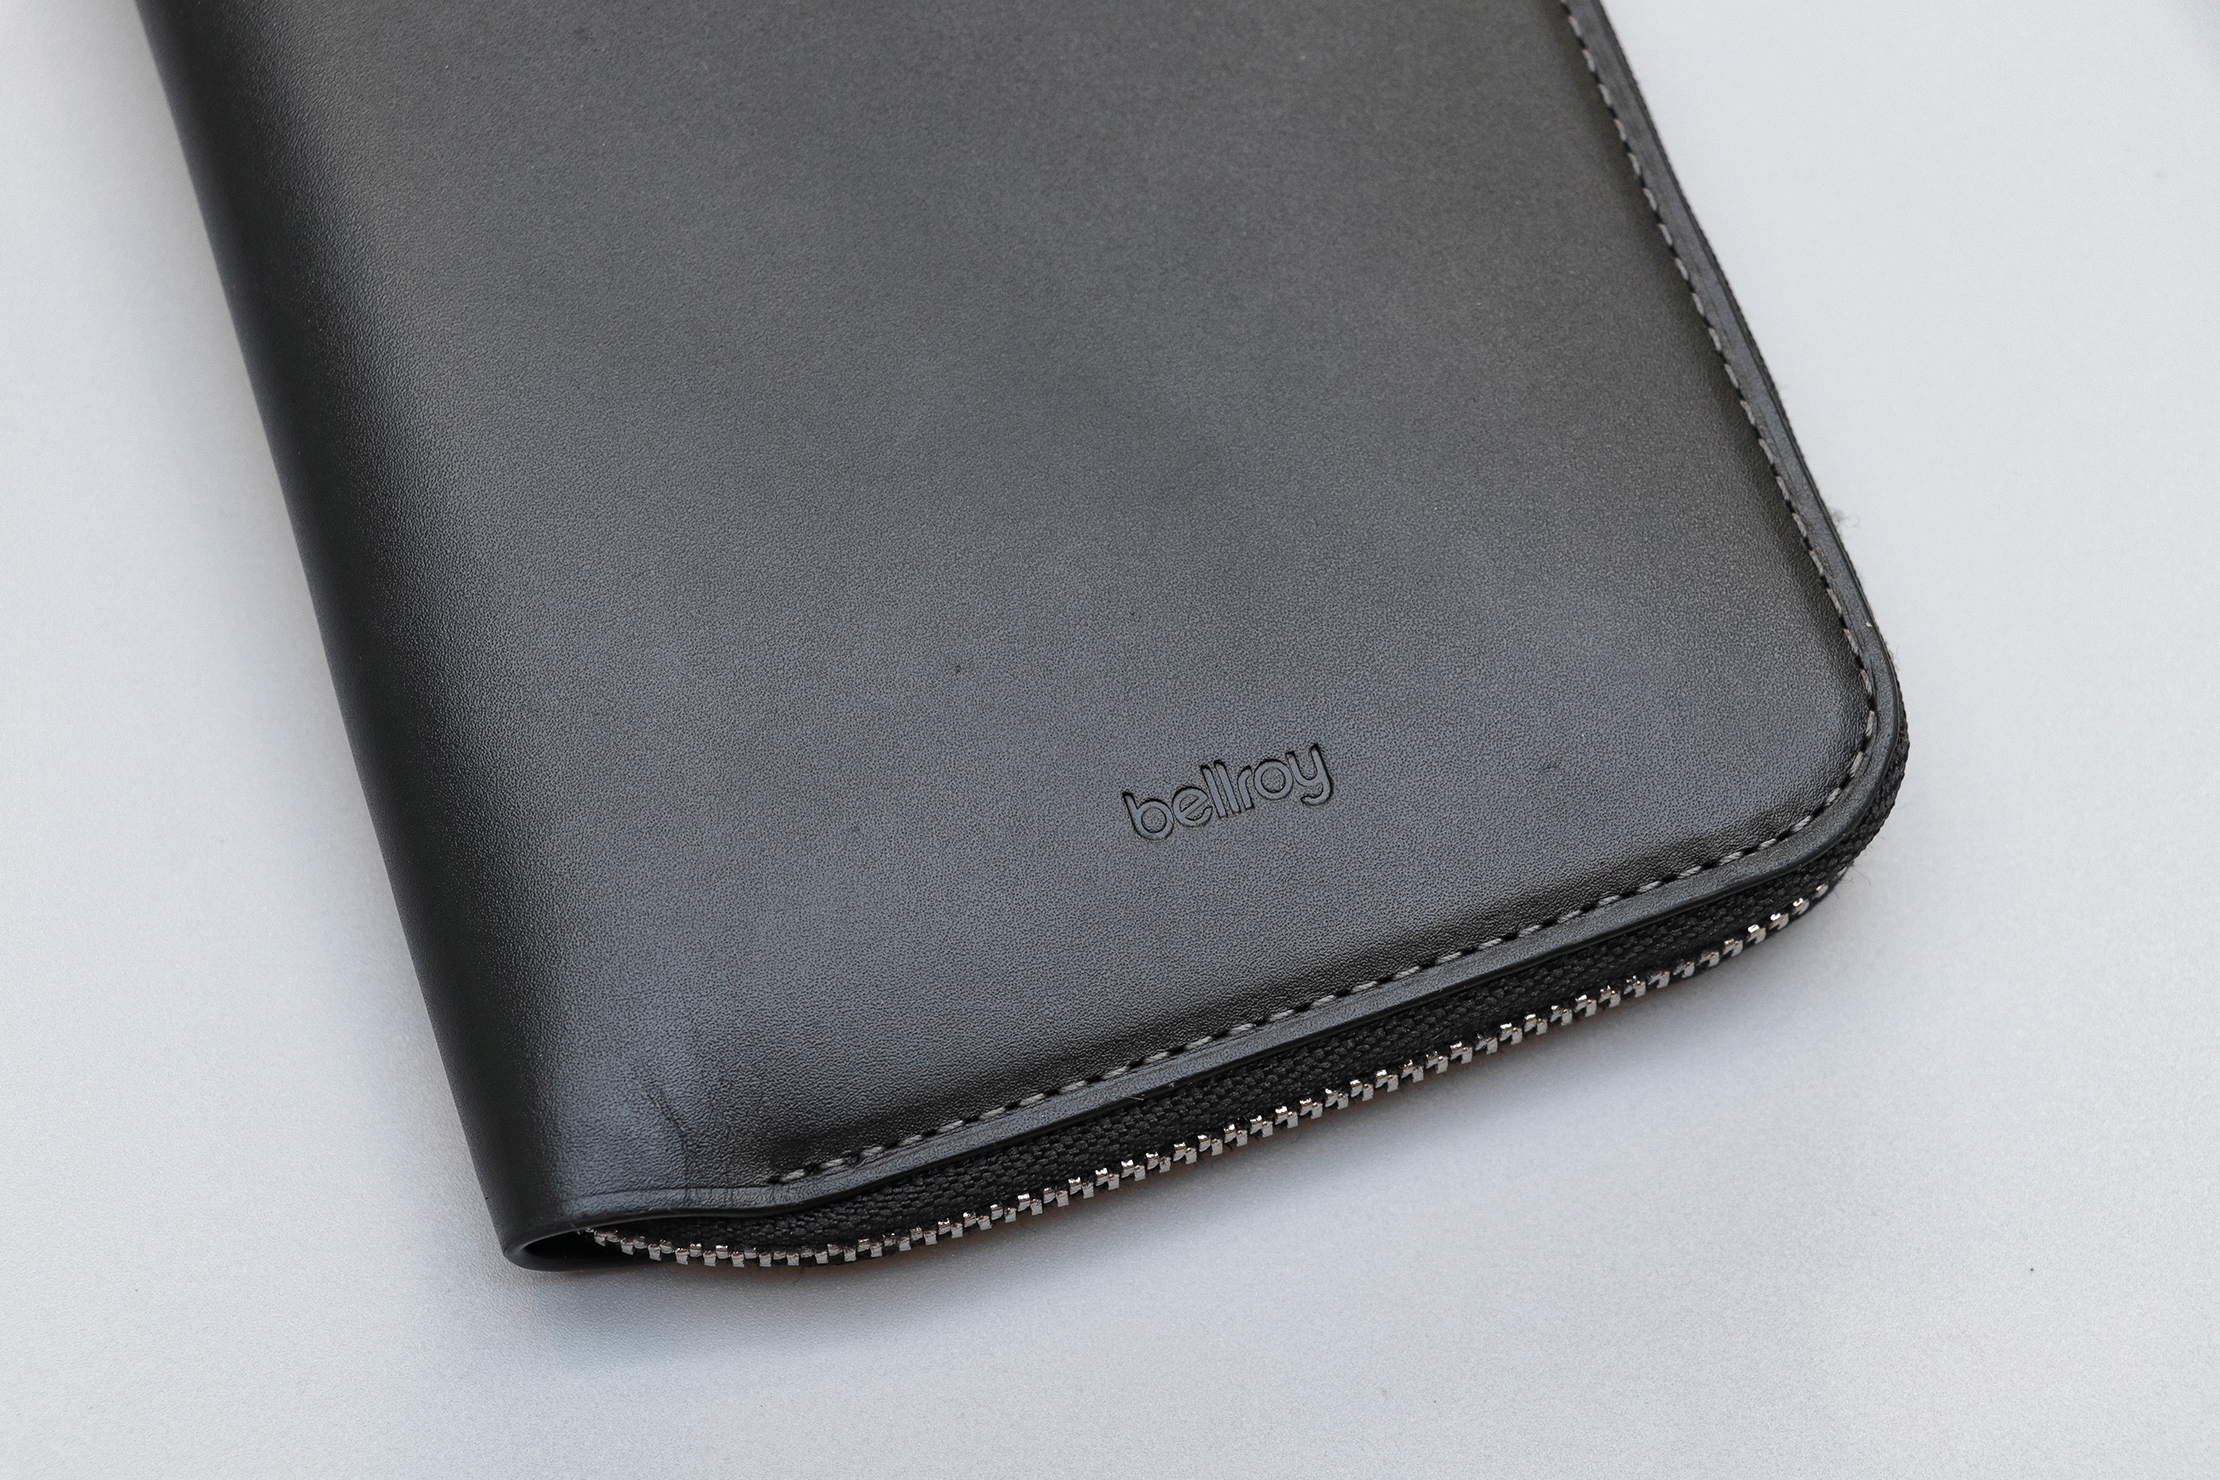 Bellroy Travel Folio Leather After Testing